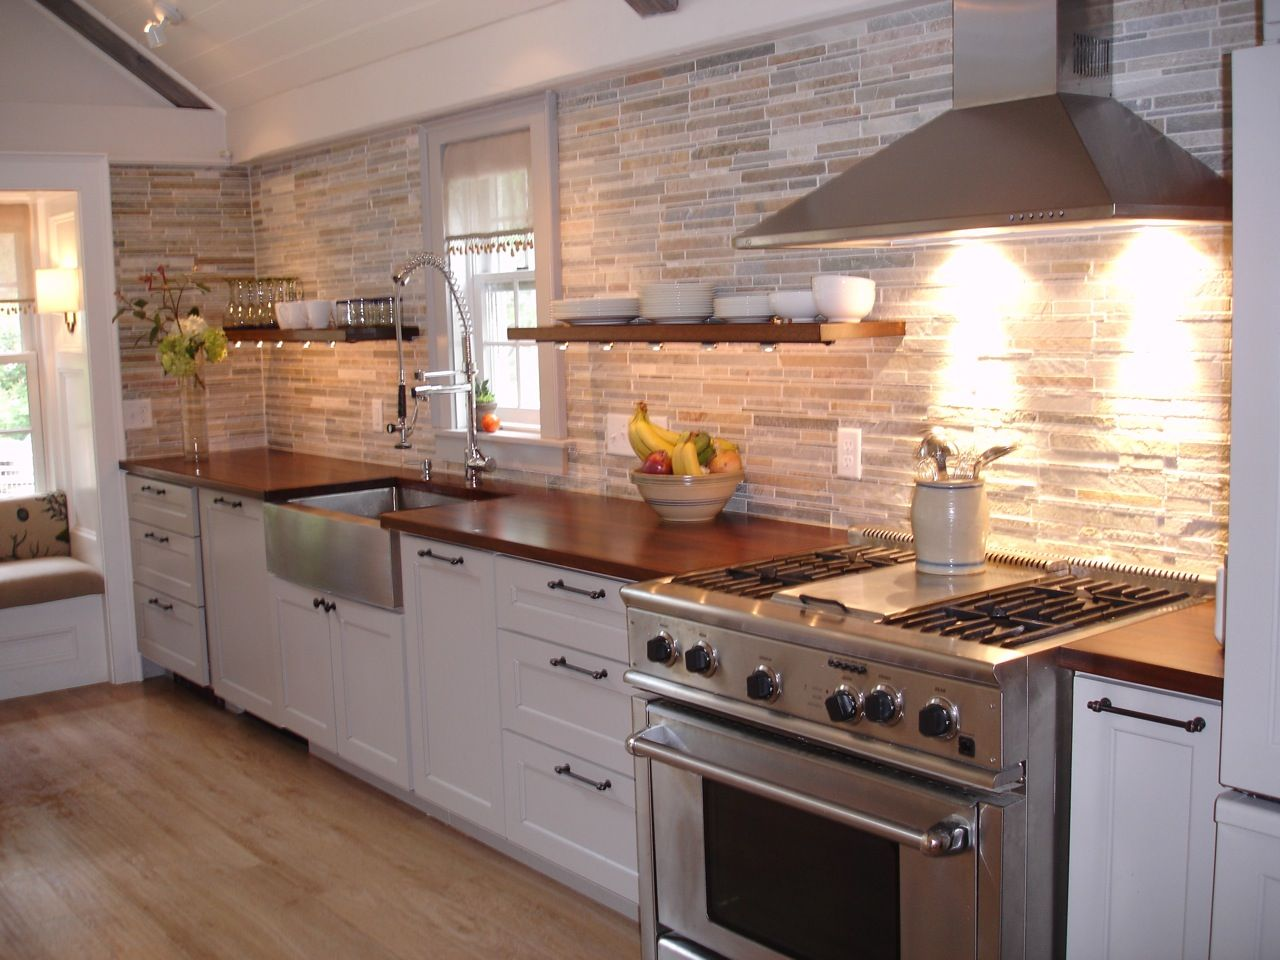 how to choose a wood countertop for your kitchen wooden kitchen countertops Mahogany wood countertop provides a warm contrast to stainless steel and white shaker kitchen cabinets